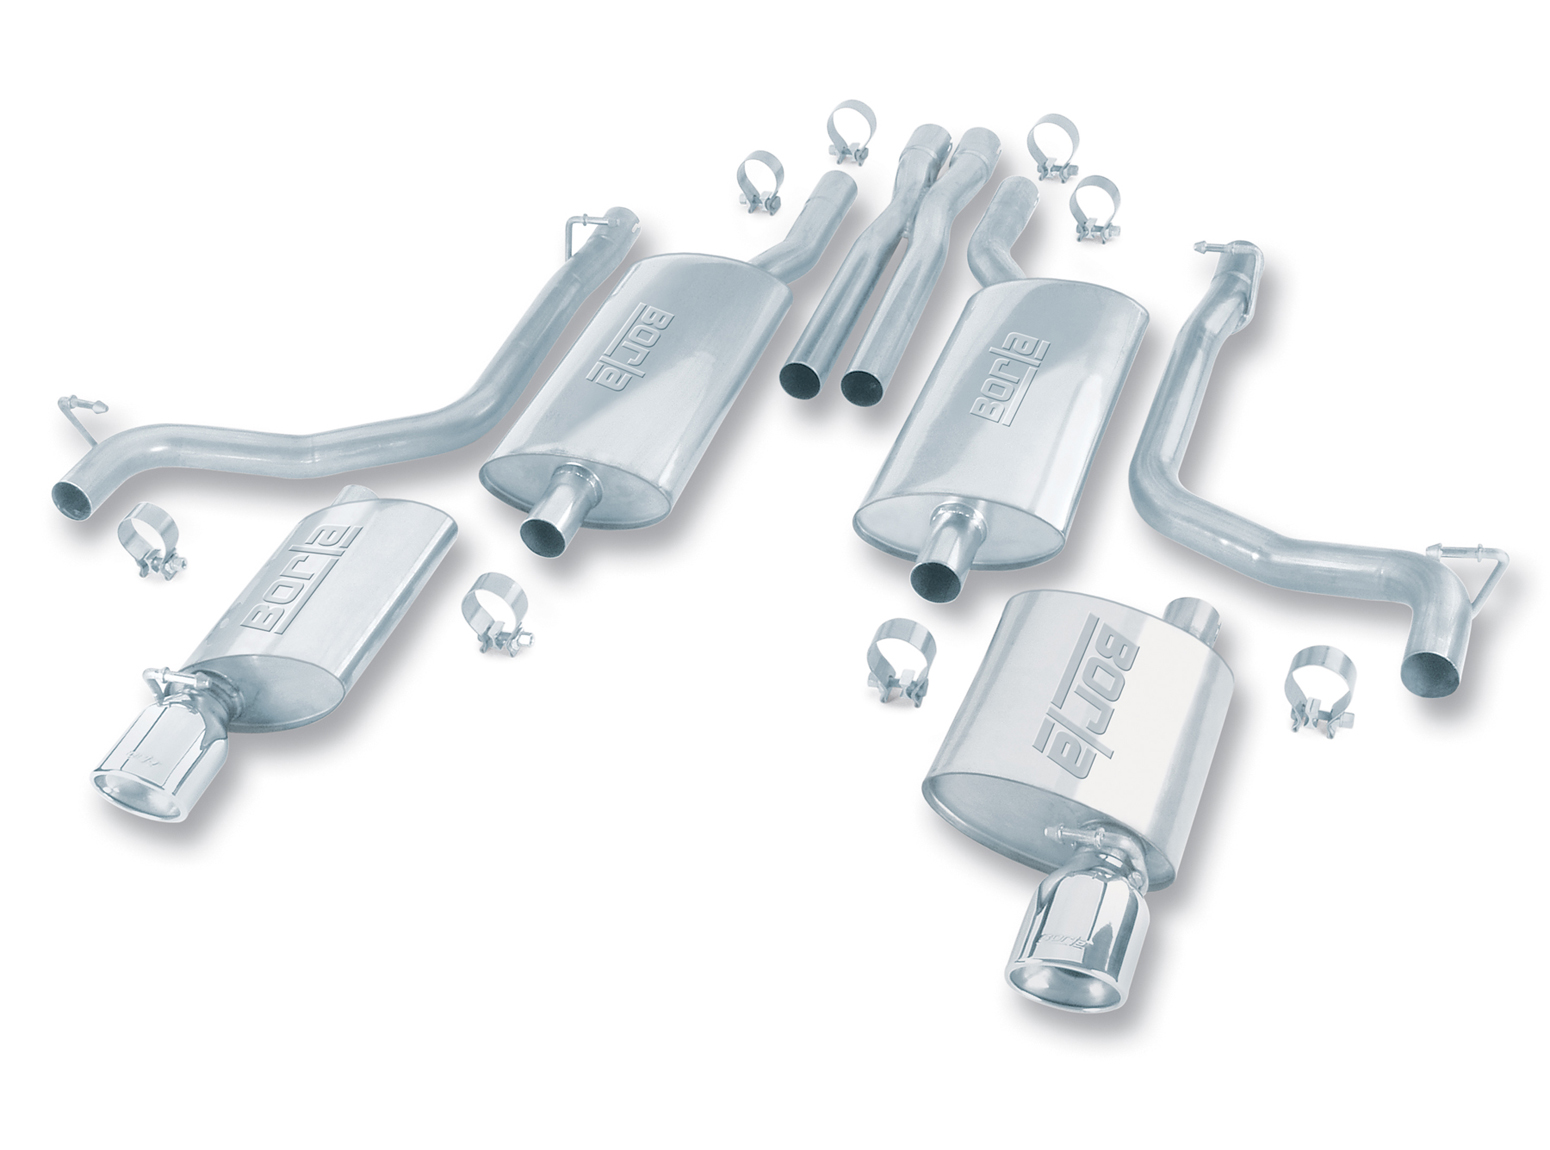 "Dodge Charger Rt 5.7l V8 2005-2010 Borla 2.5"", 2.25"" Cat-Back Exhaust System - Single Oval Rolled Angle-Cut Tips"